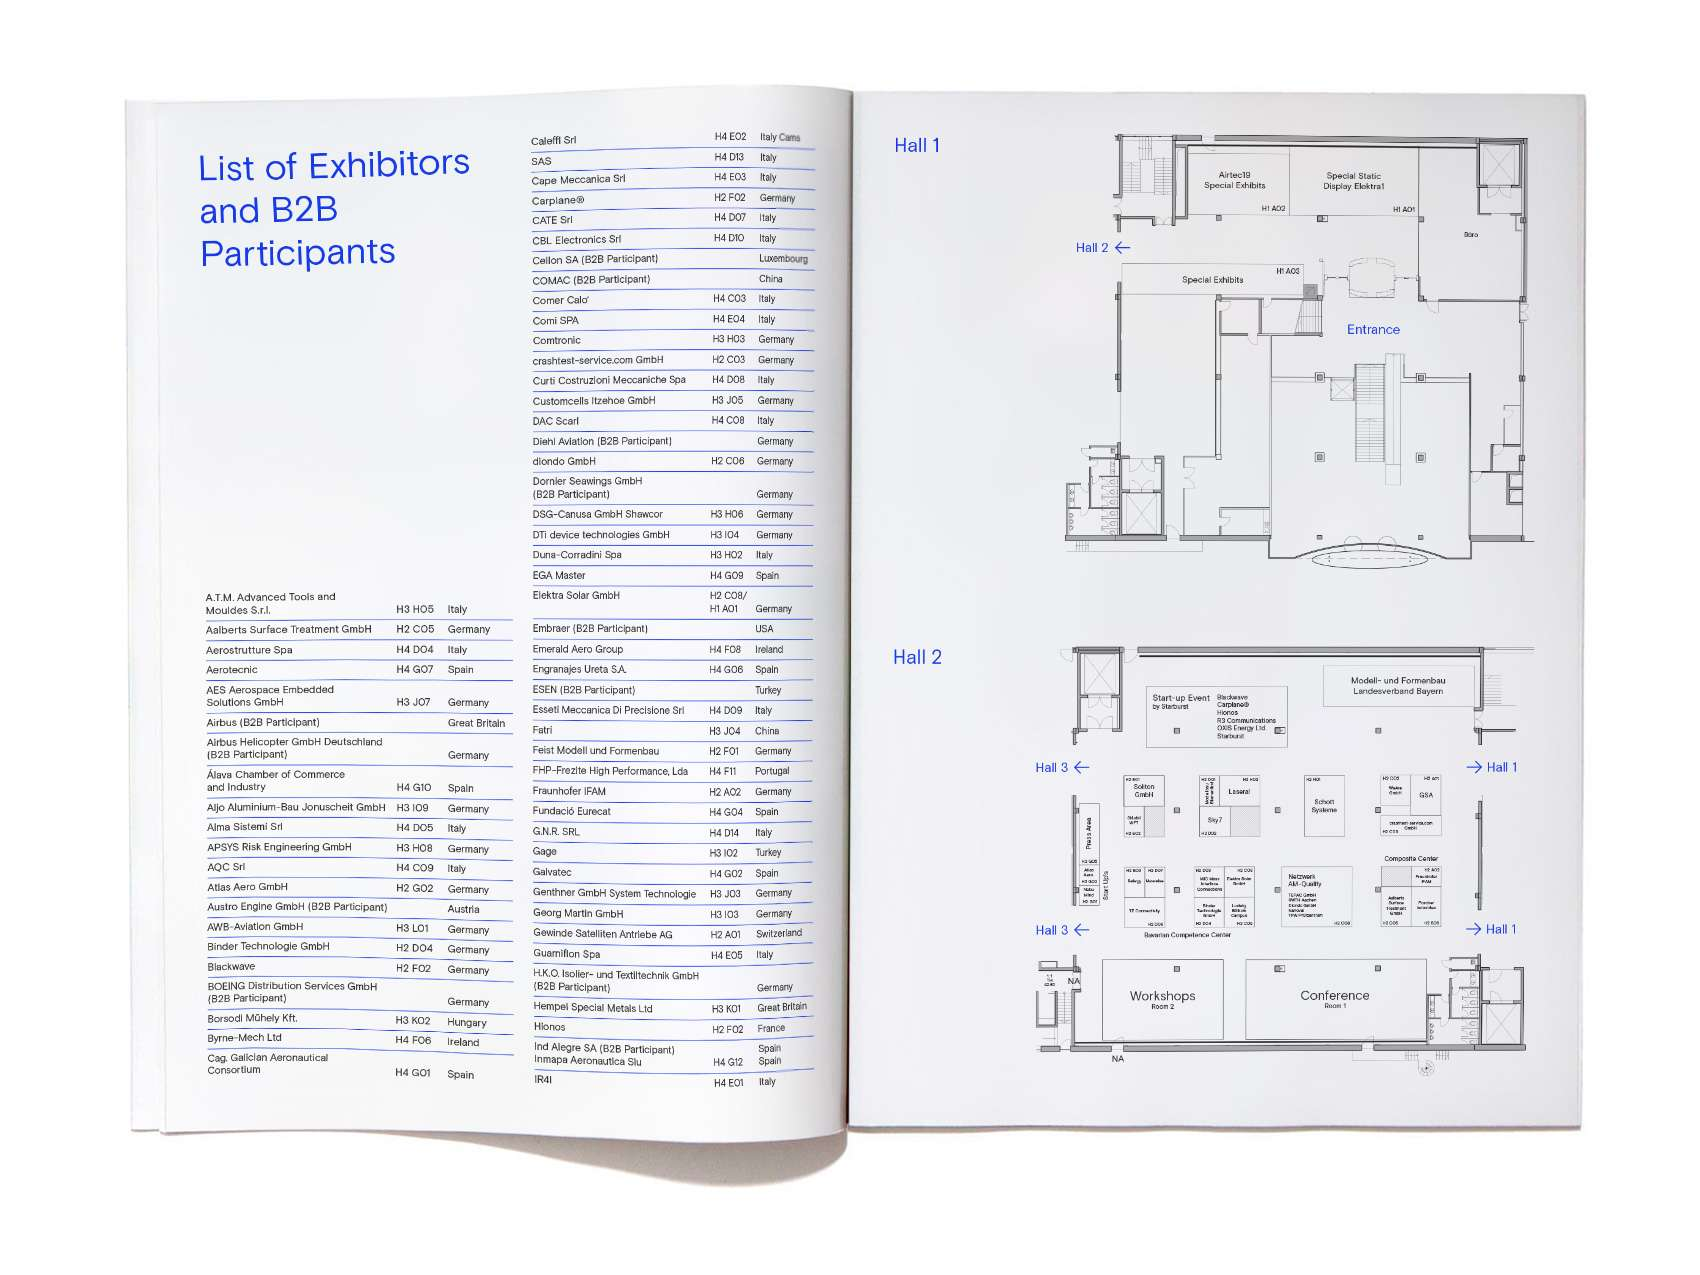 btb-airtec-exhibition-guide-2